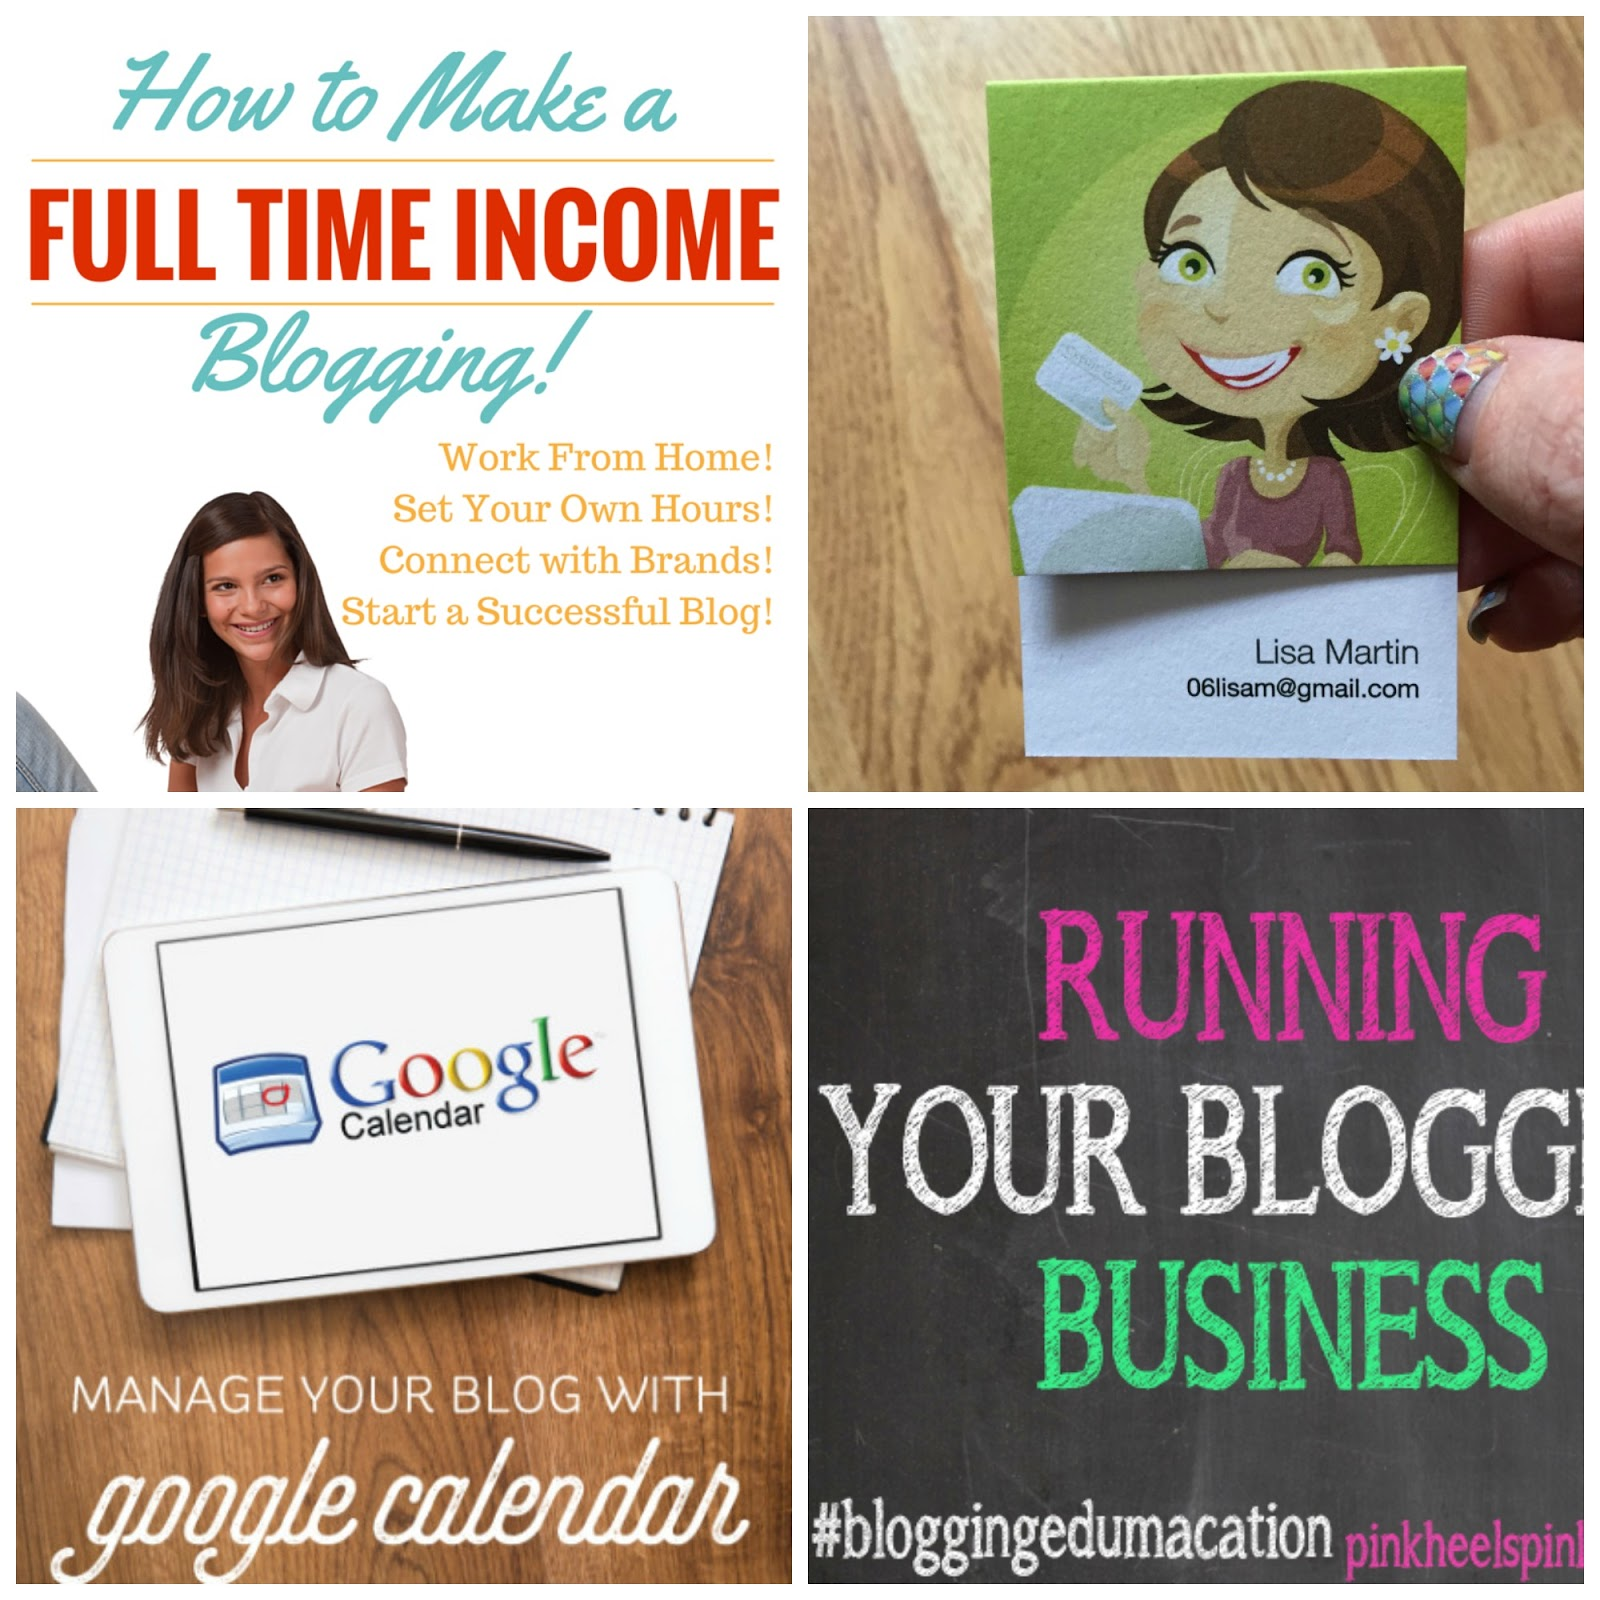 Blogging Income, Business Cards, Blogging Calendar, Blogging Business